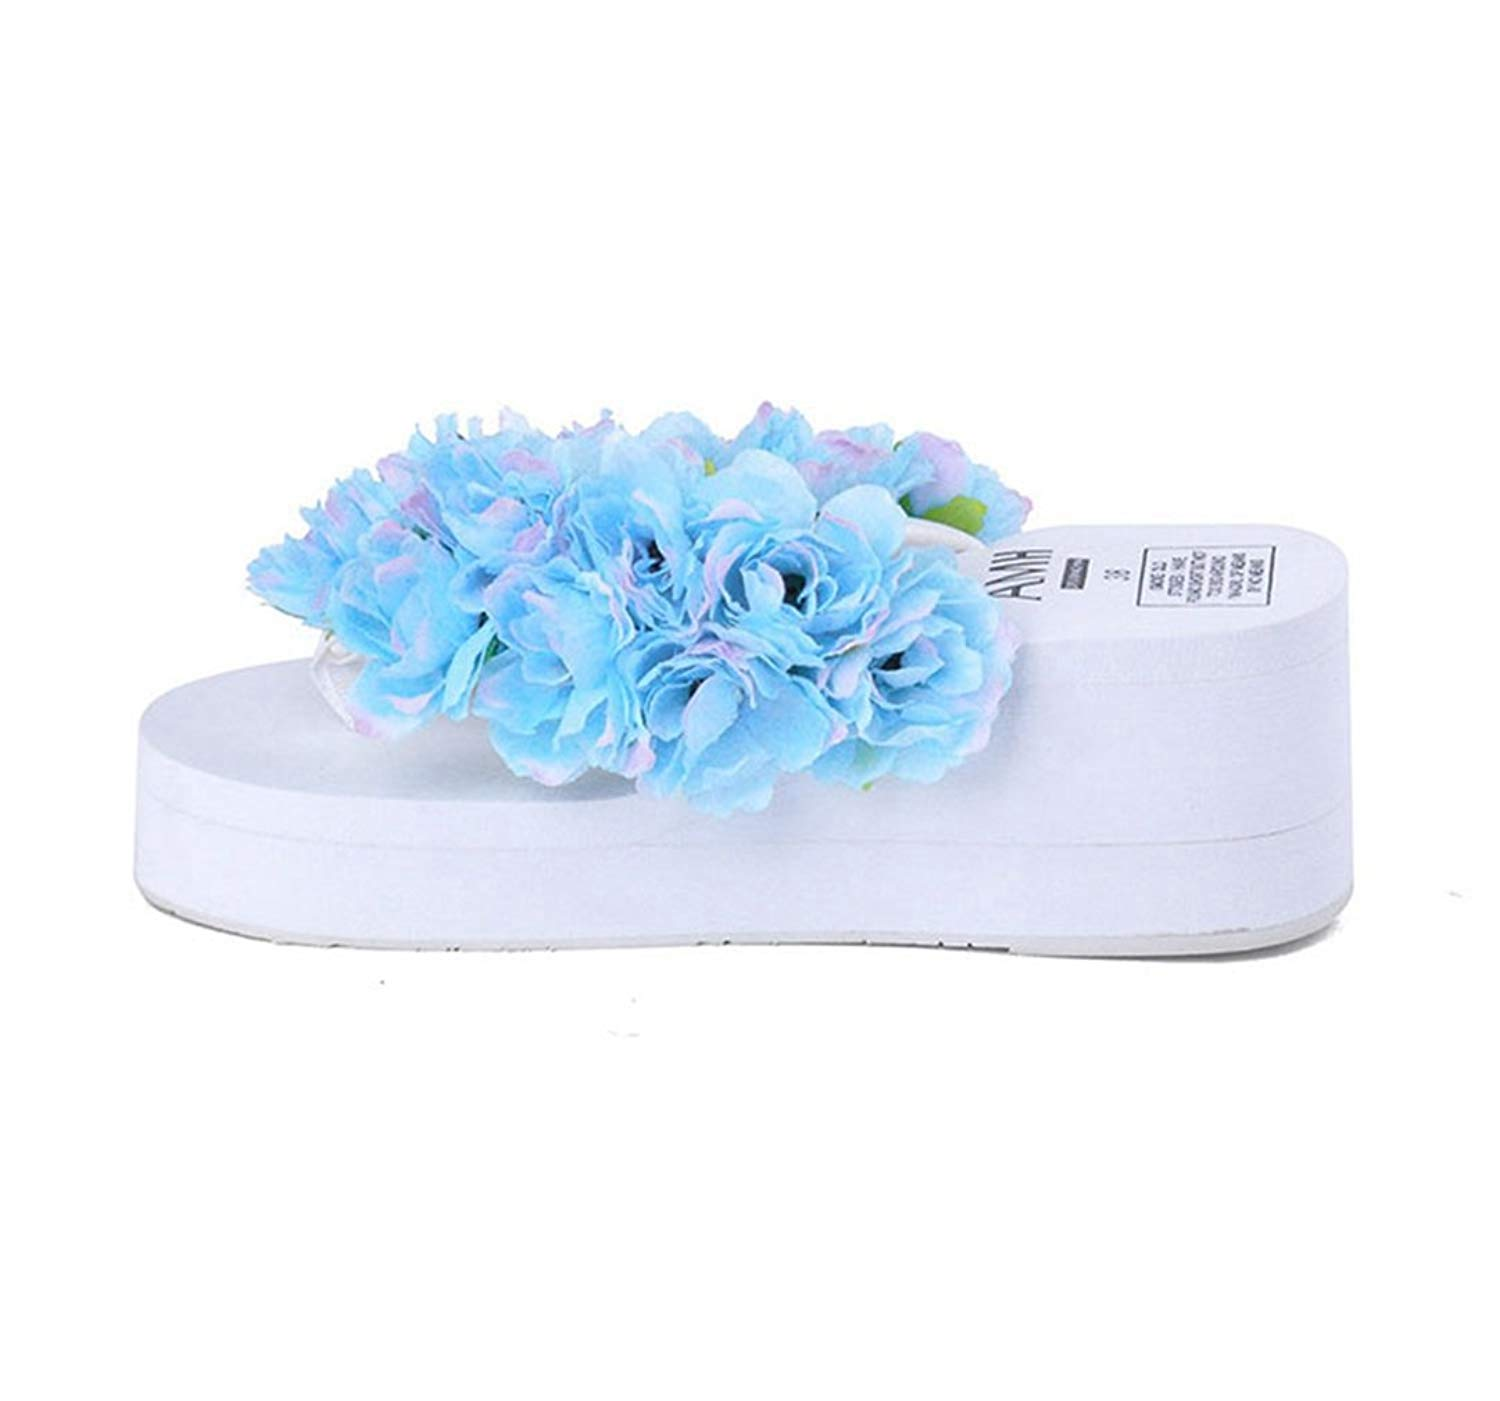 a95321f498f Get Quotations · Womens Flip Flop Thongs Wedge Platform Mid Heel Sweet  Flowers Slippers for Wedding Bride Girls Beach